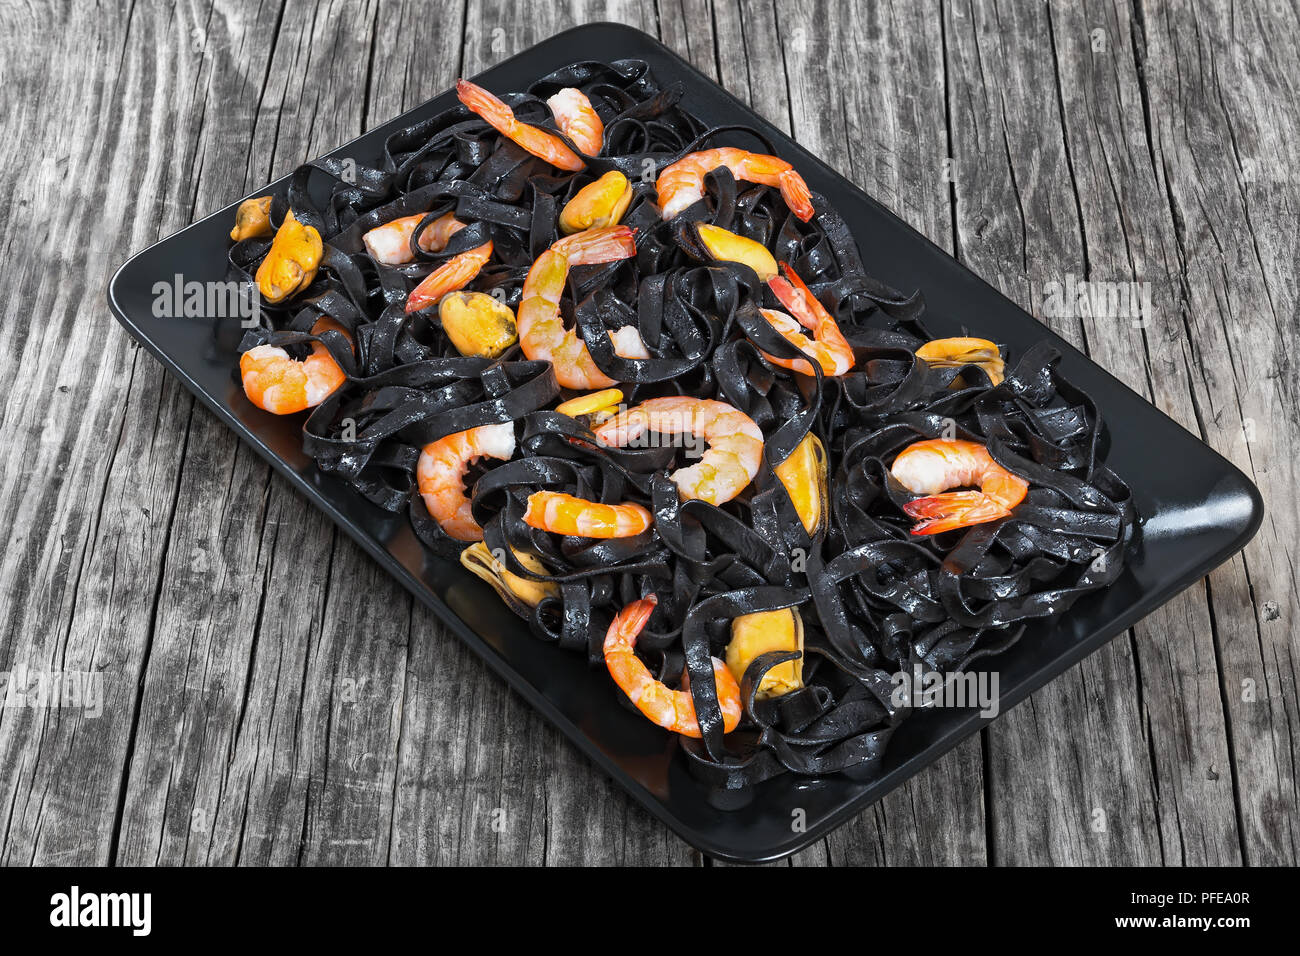 black noodles salad with prawns and mussels on black rectangular platter  on dark wooden table  close-up, top view - Stock Image